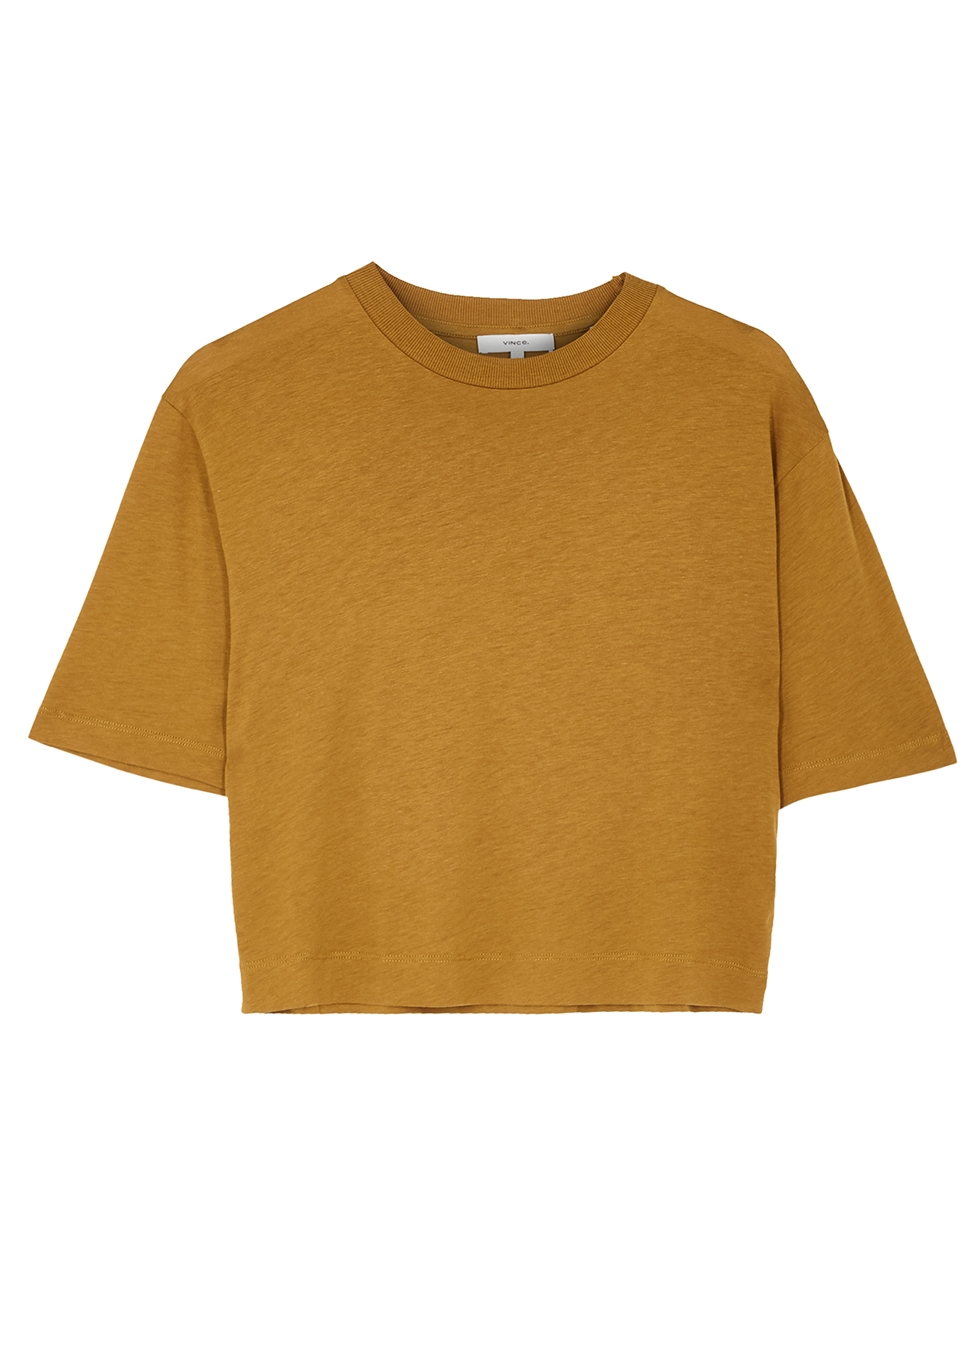 Brown cropped jersey T-shirt